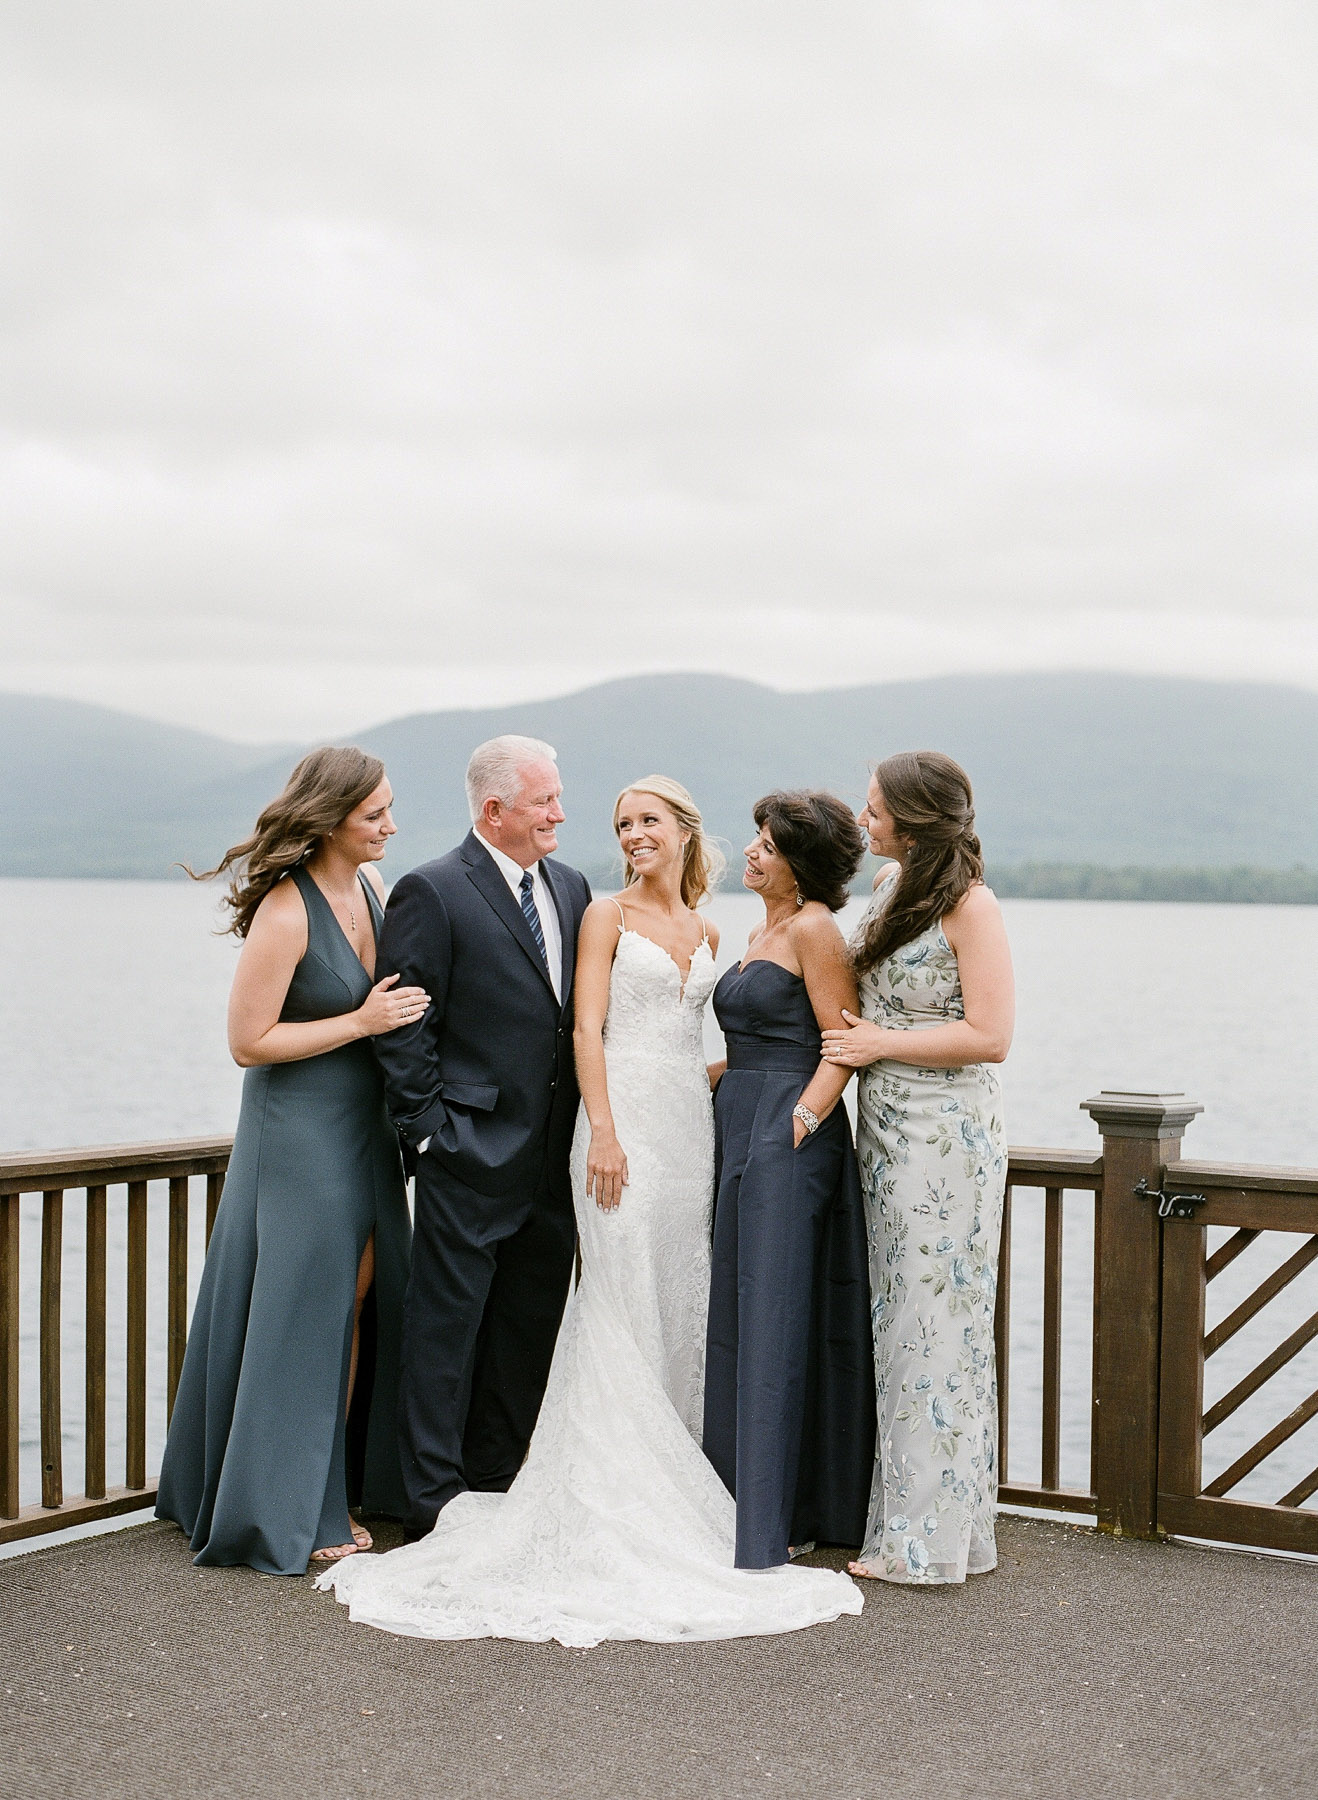 Private Island Upstate NY Wedding by Michelle Lange Photography-17.jpg